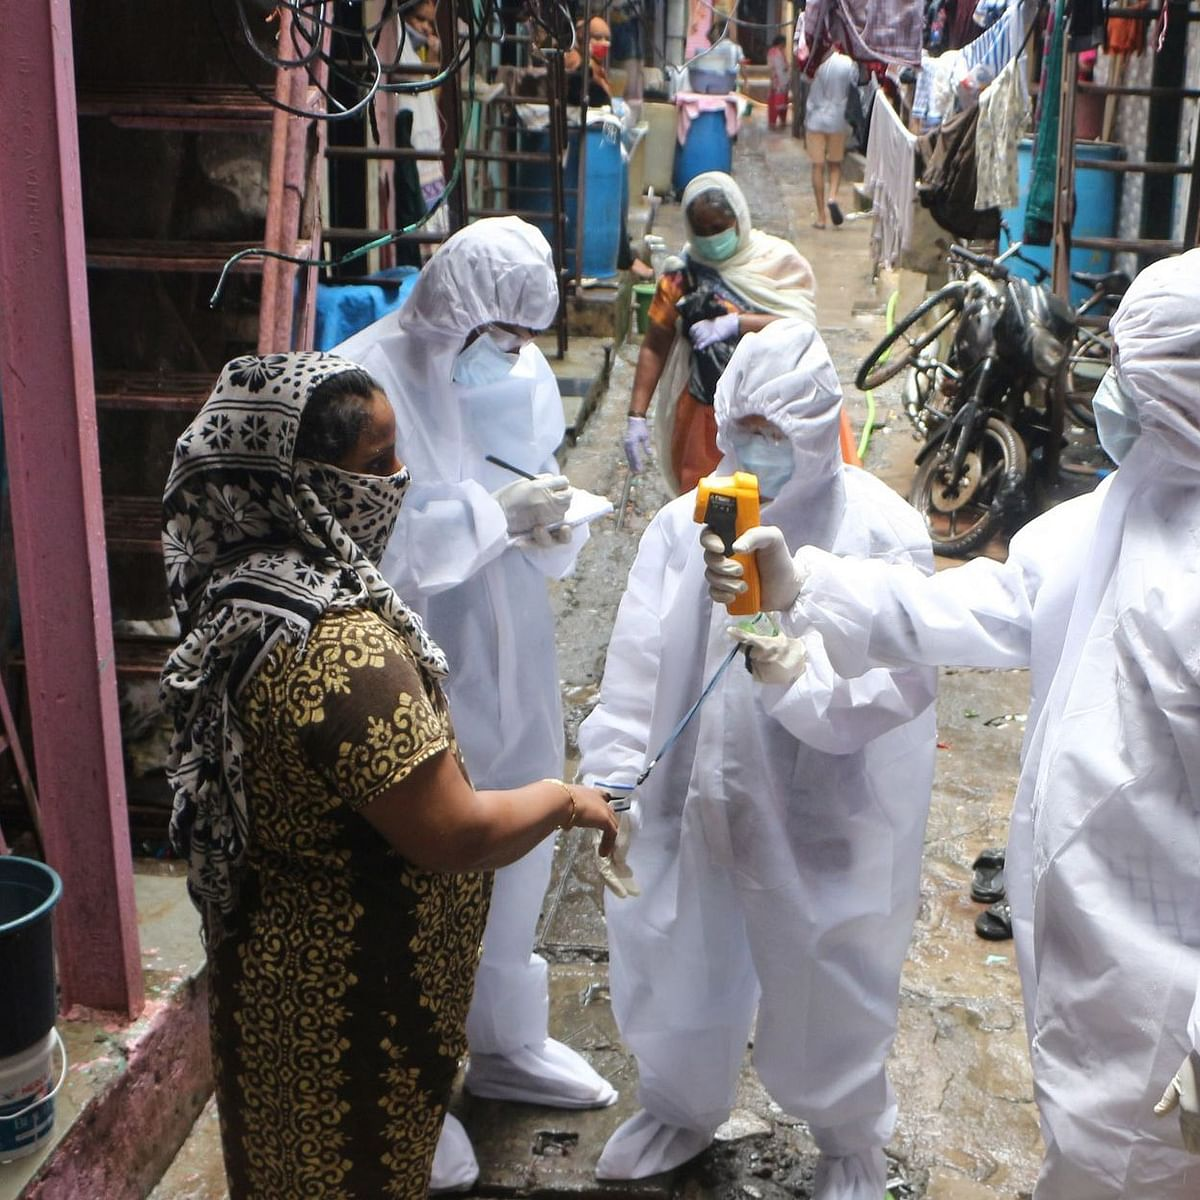 Coronavirus in Mumbai: BMC issues to diktat to high-rises to curb COVID-19 outbreak